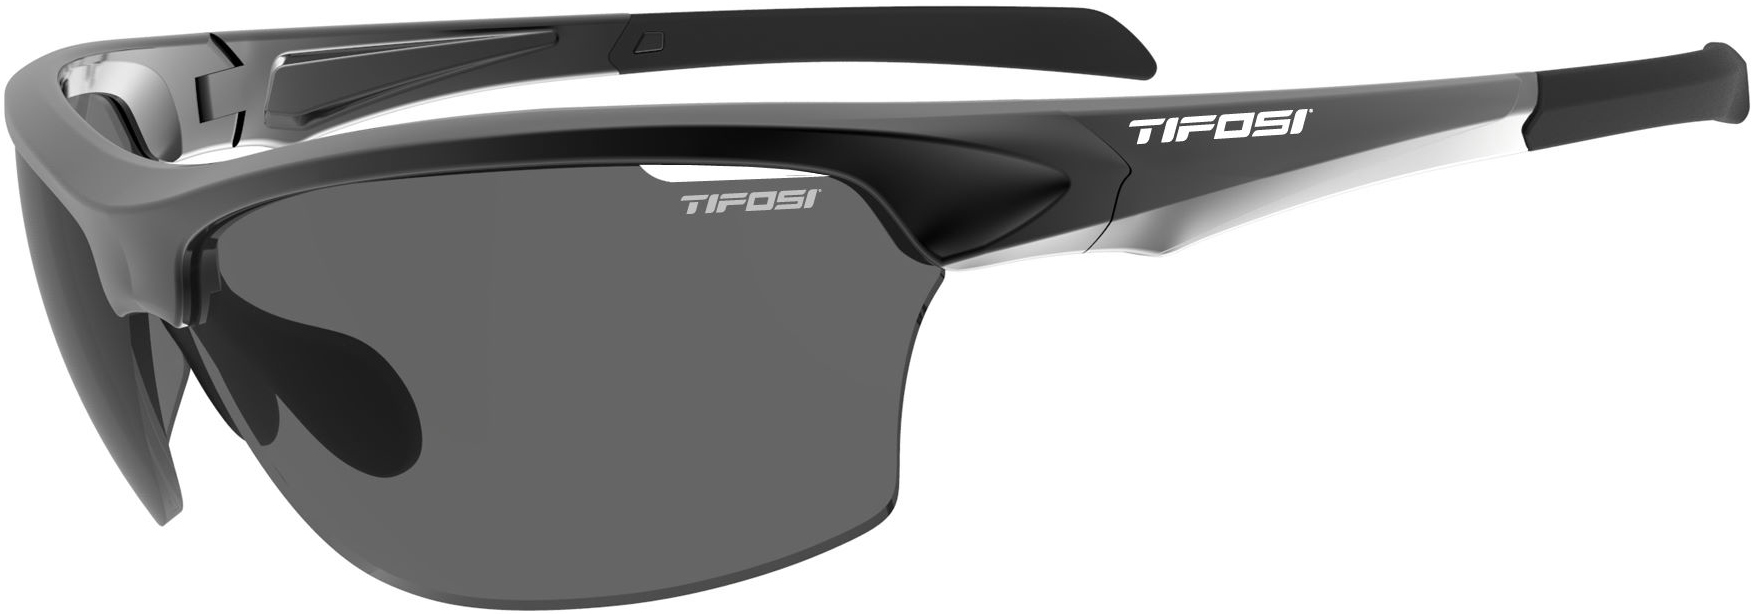 Tifosi Eyewear Intense Sunglasses | Glasses